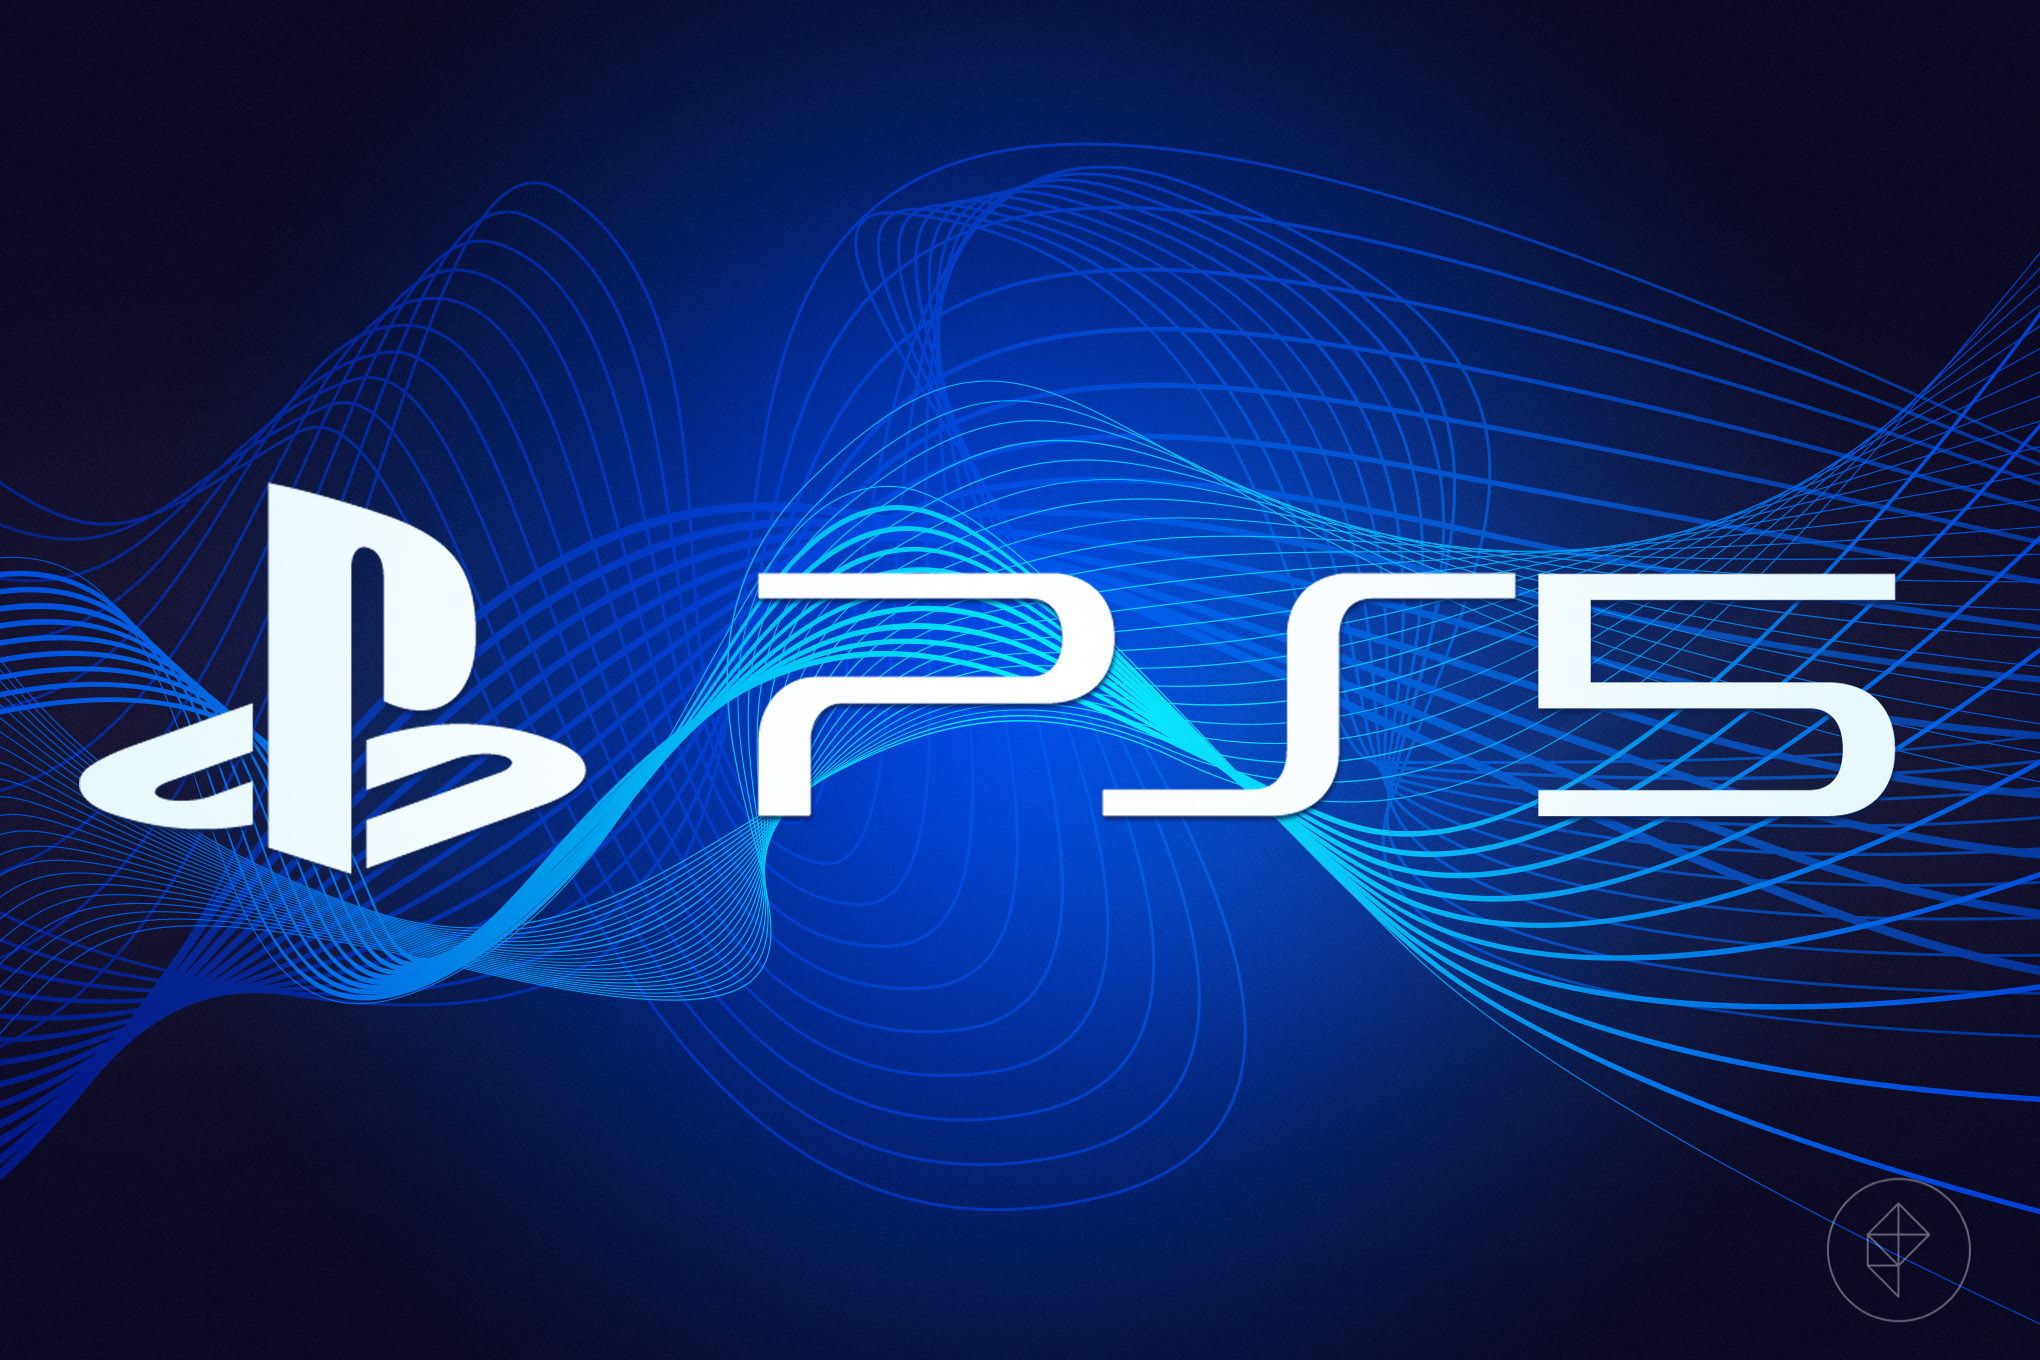 PS5: What we know about the next-gen PlayStation